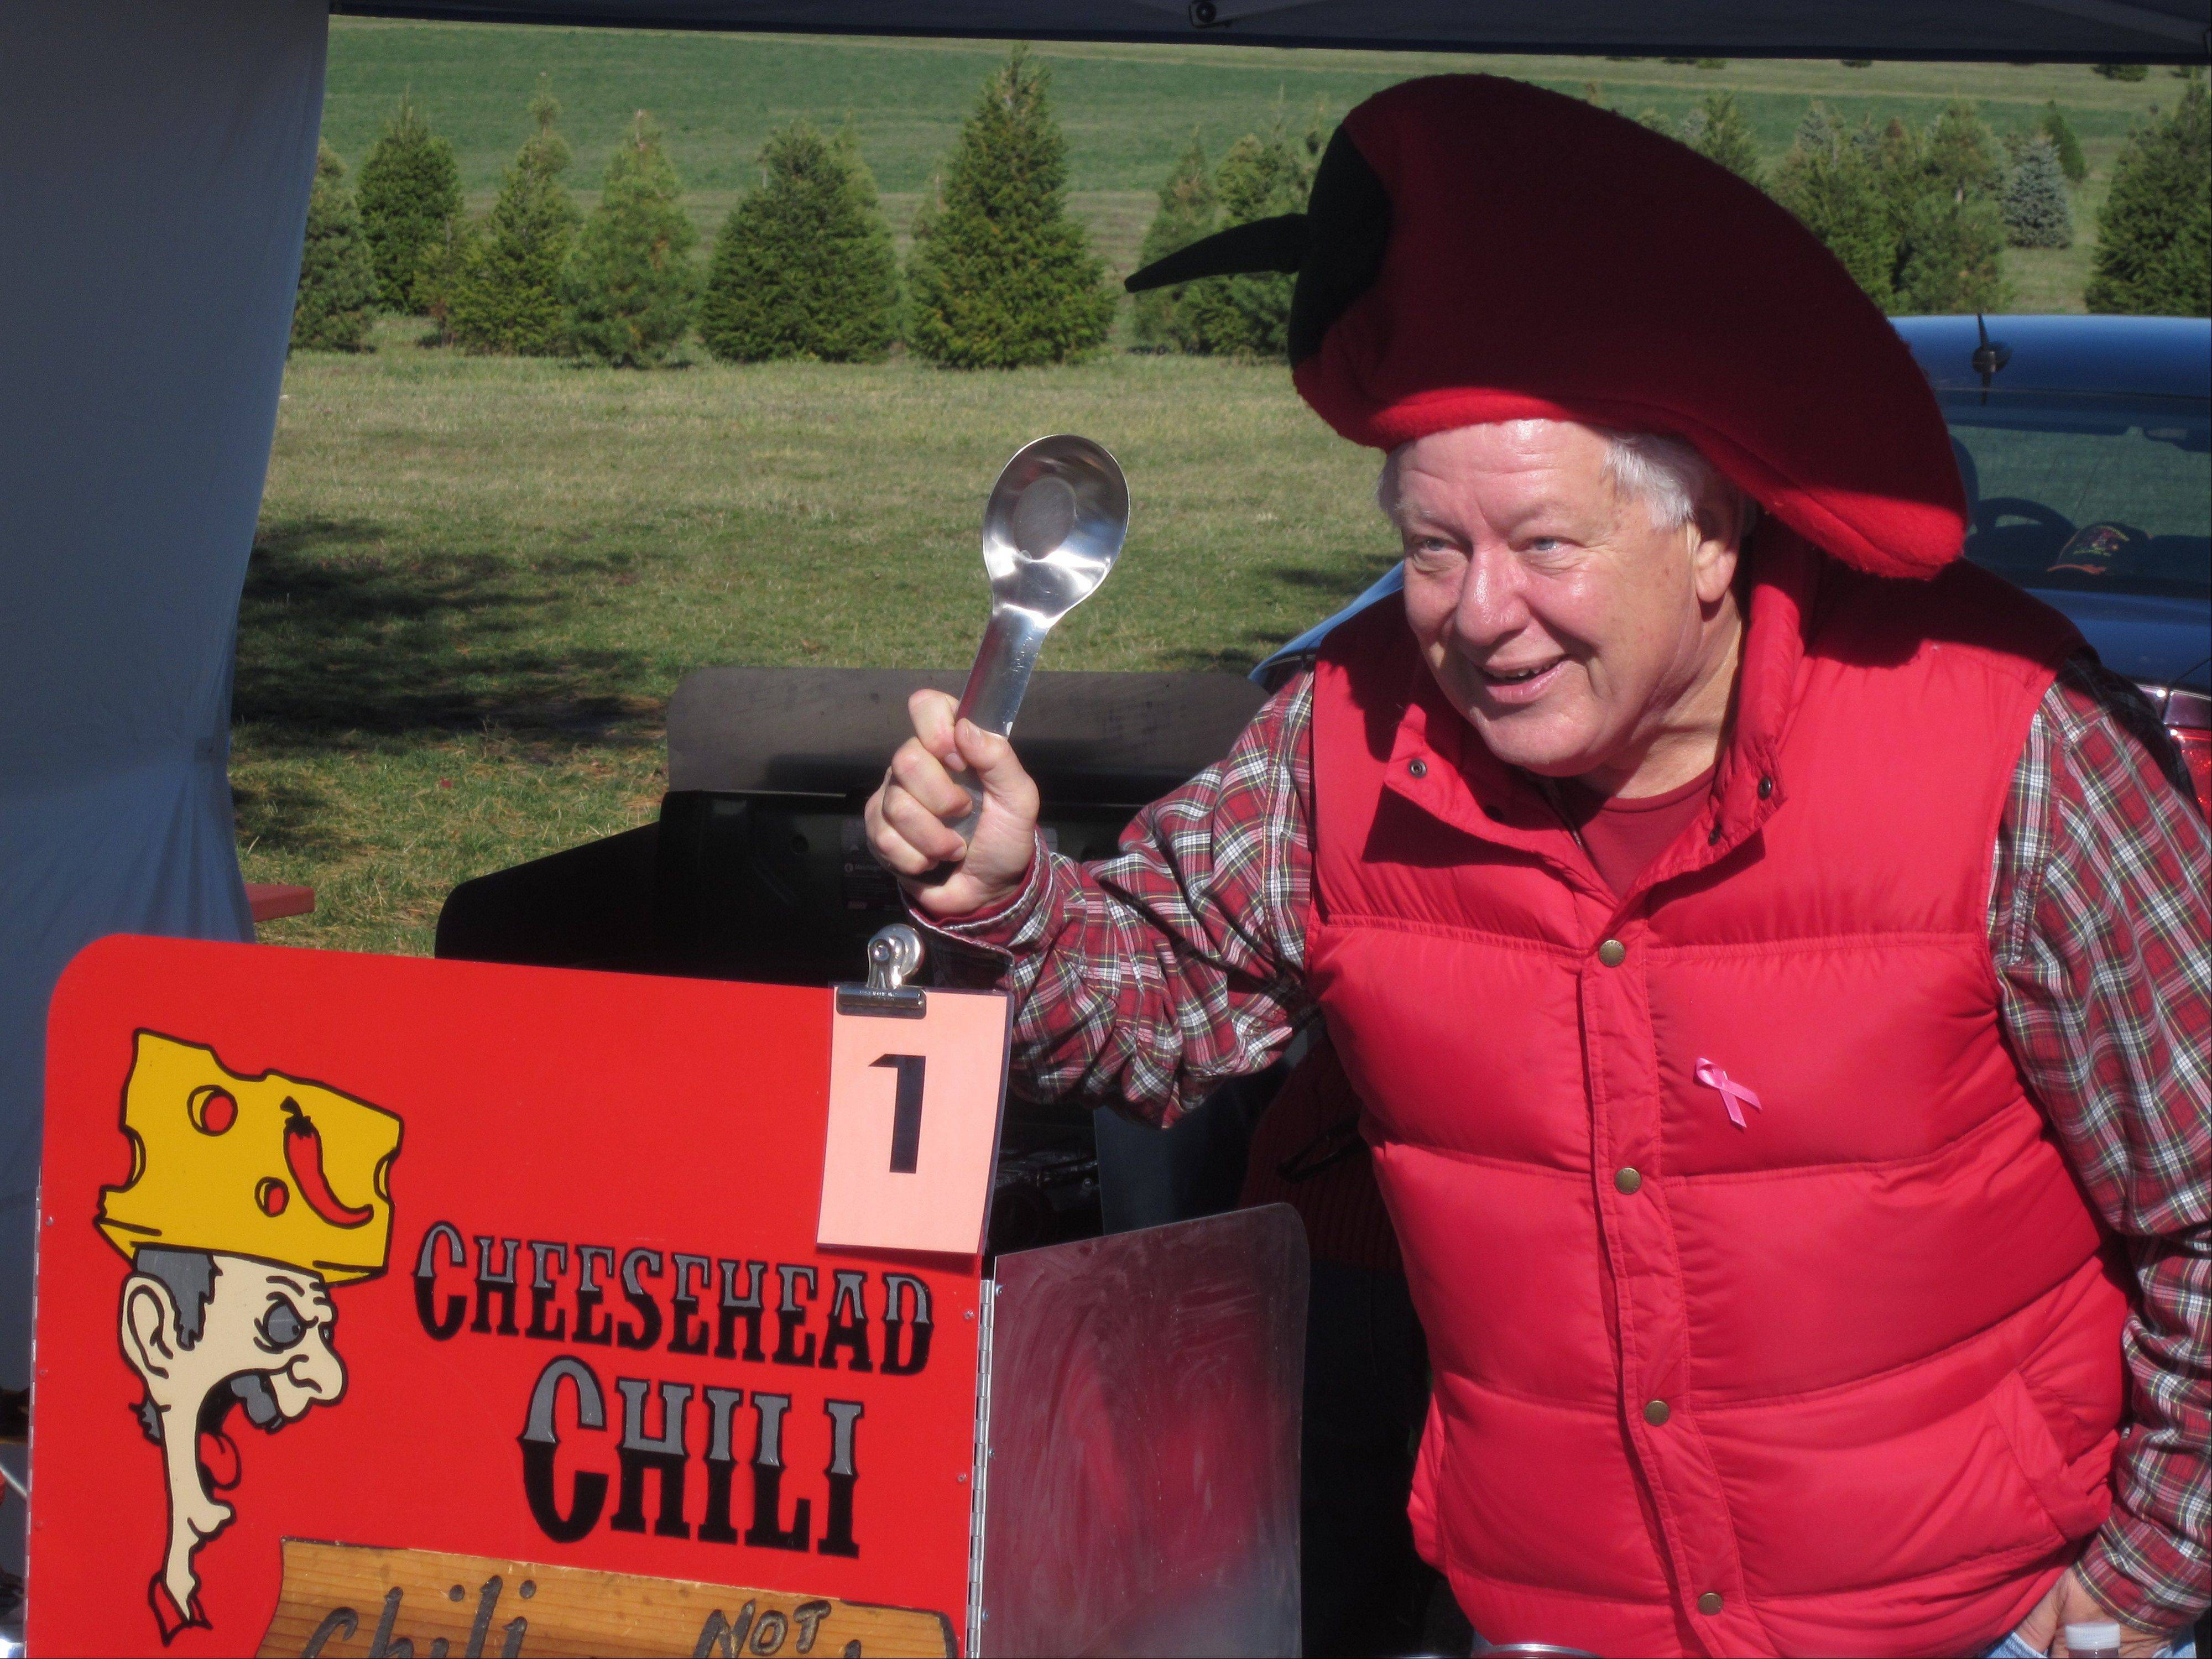 Funny hats and decorated booths were part of the spirit at a fundraising chili cook-off in Maple Park Saturday. The money raised went to Conley Outreach Community Services.